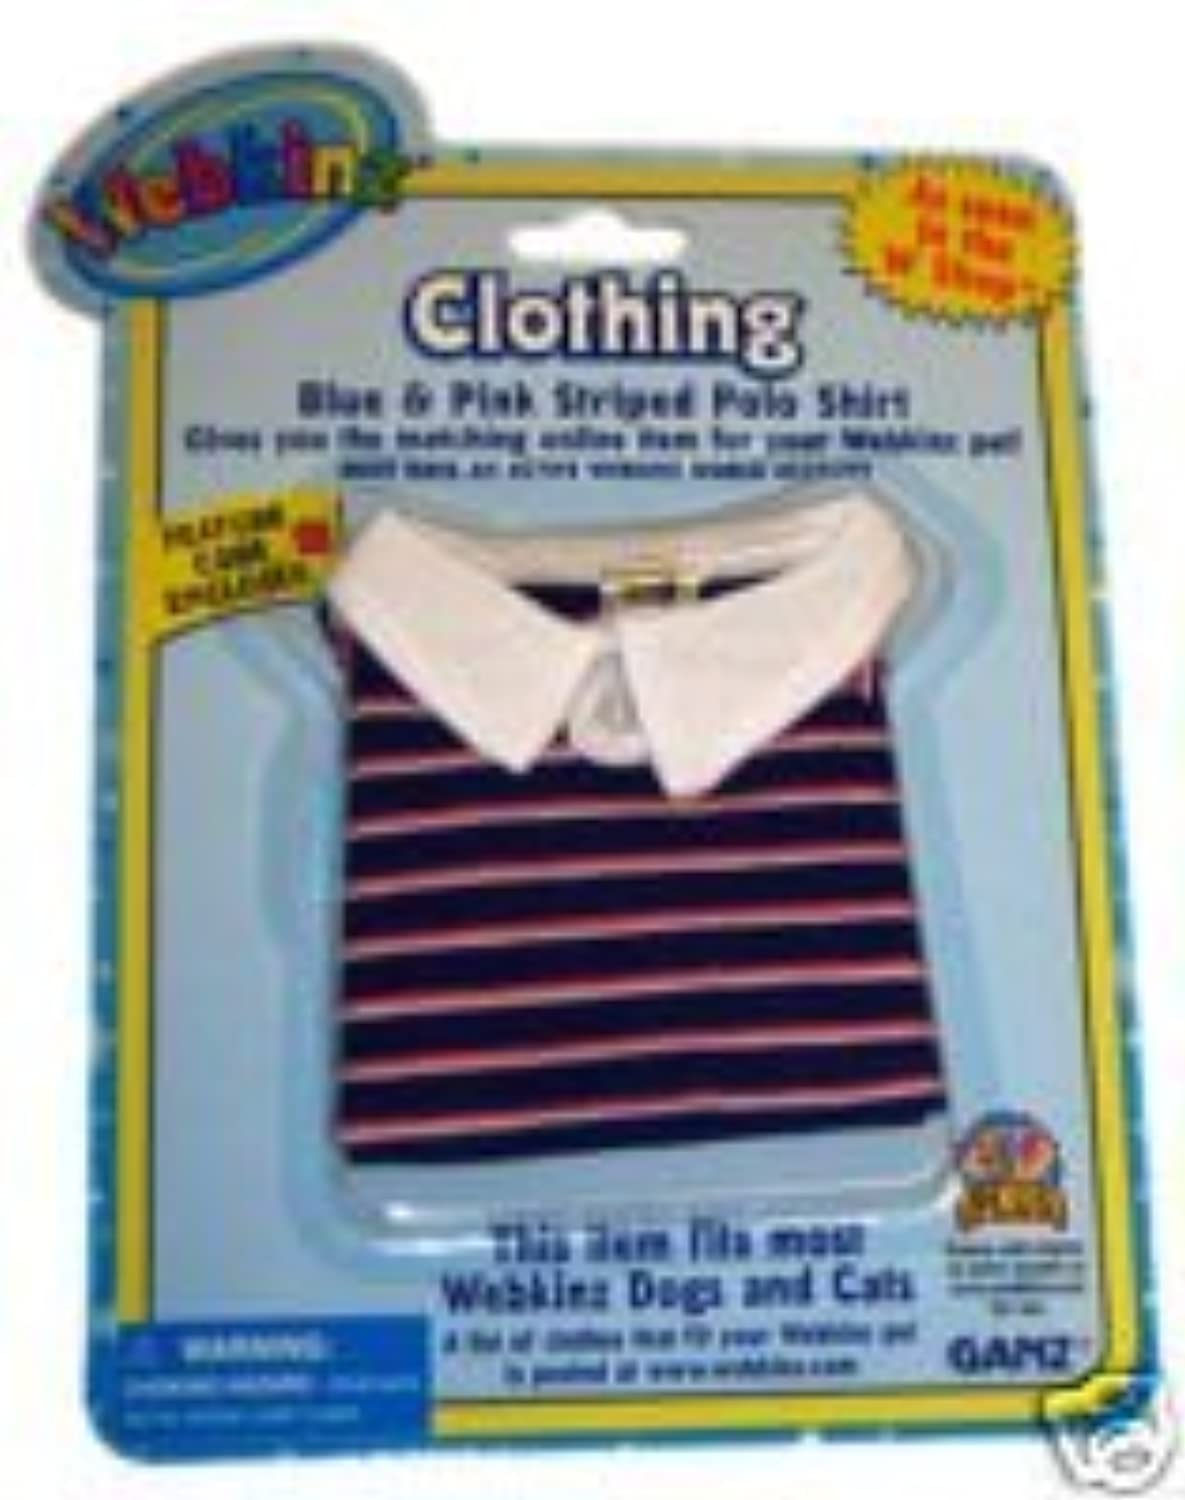 Webkinz Clothes  blueee and Pink Striped Polo by Webkinz